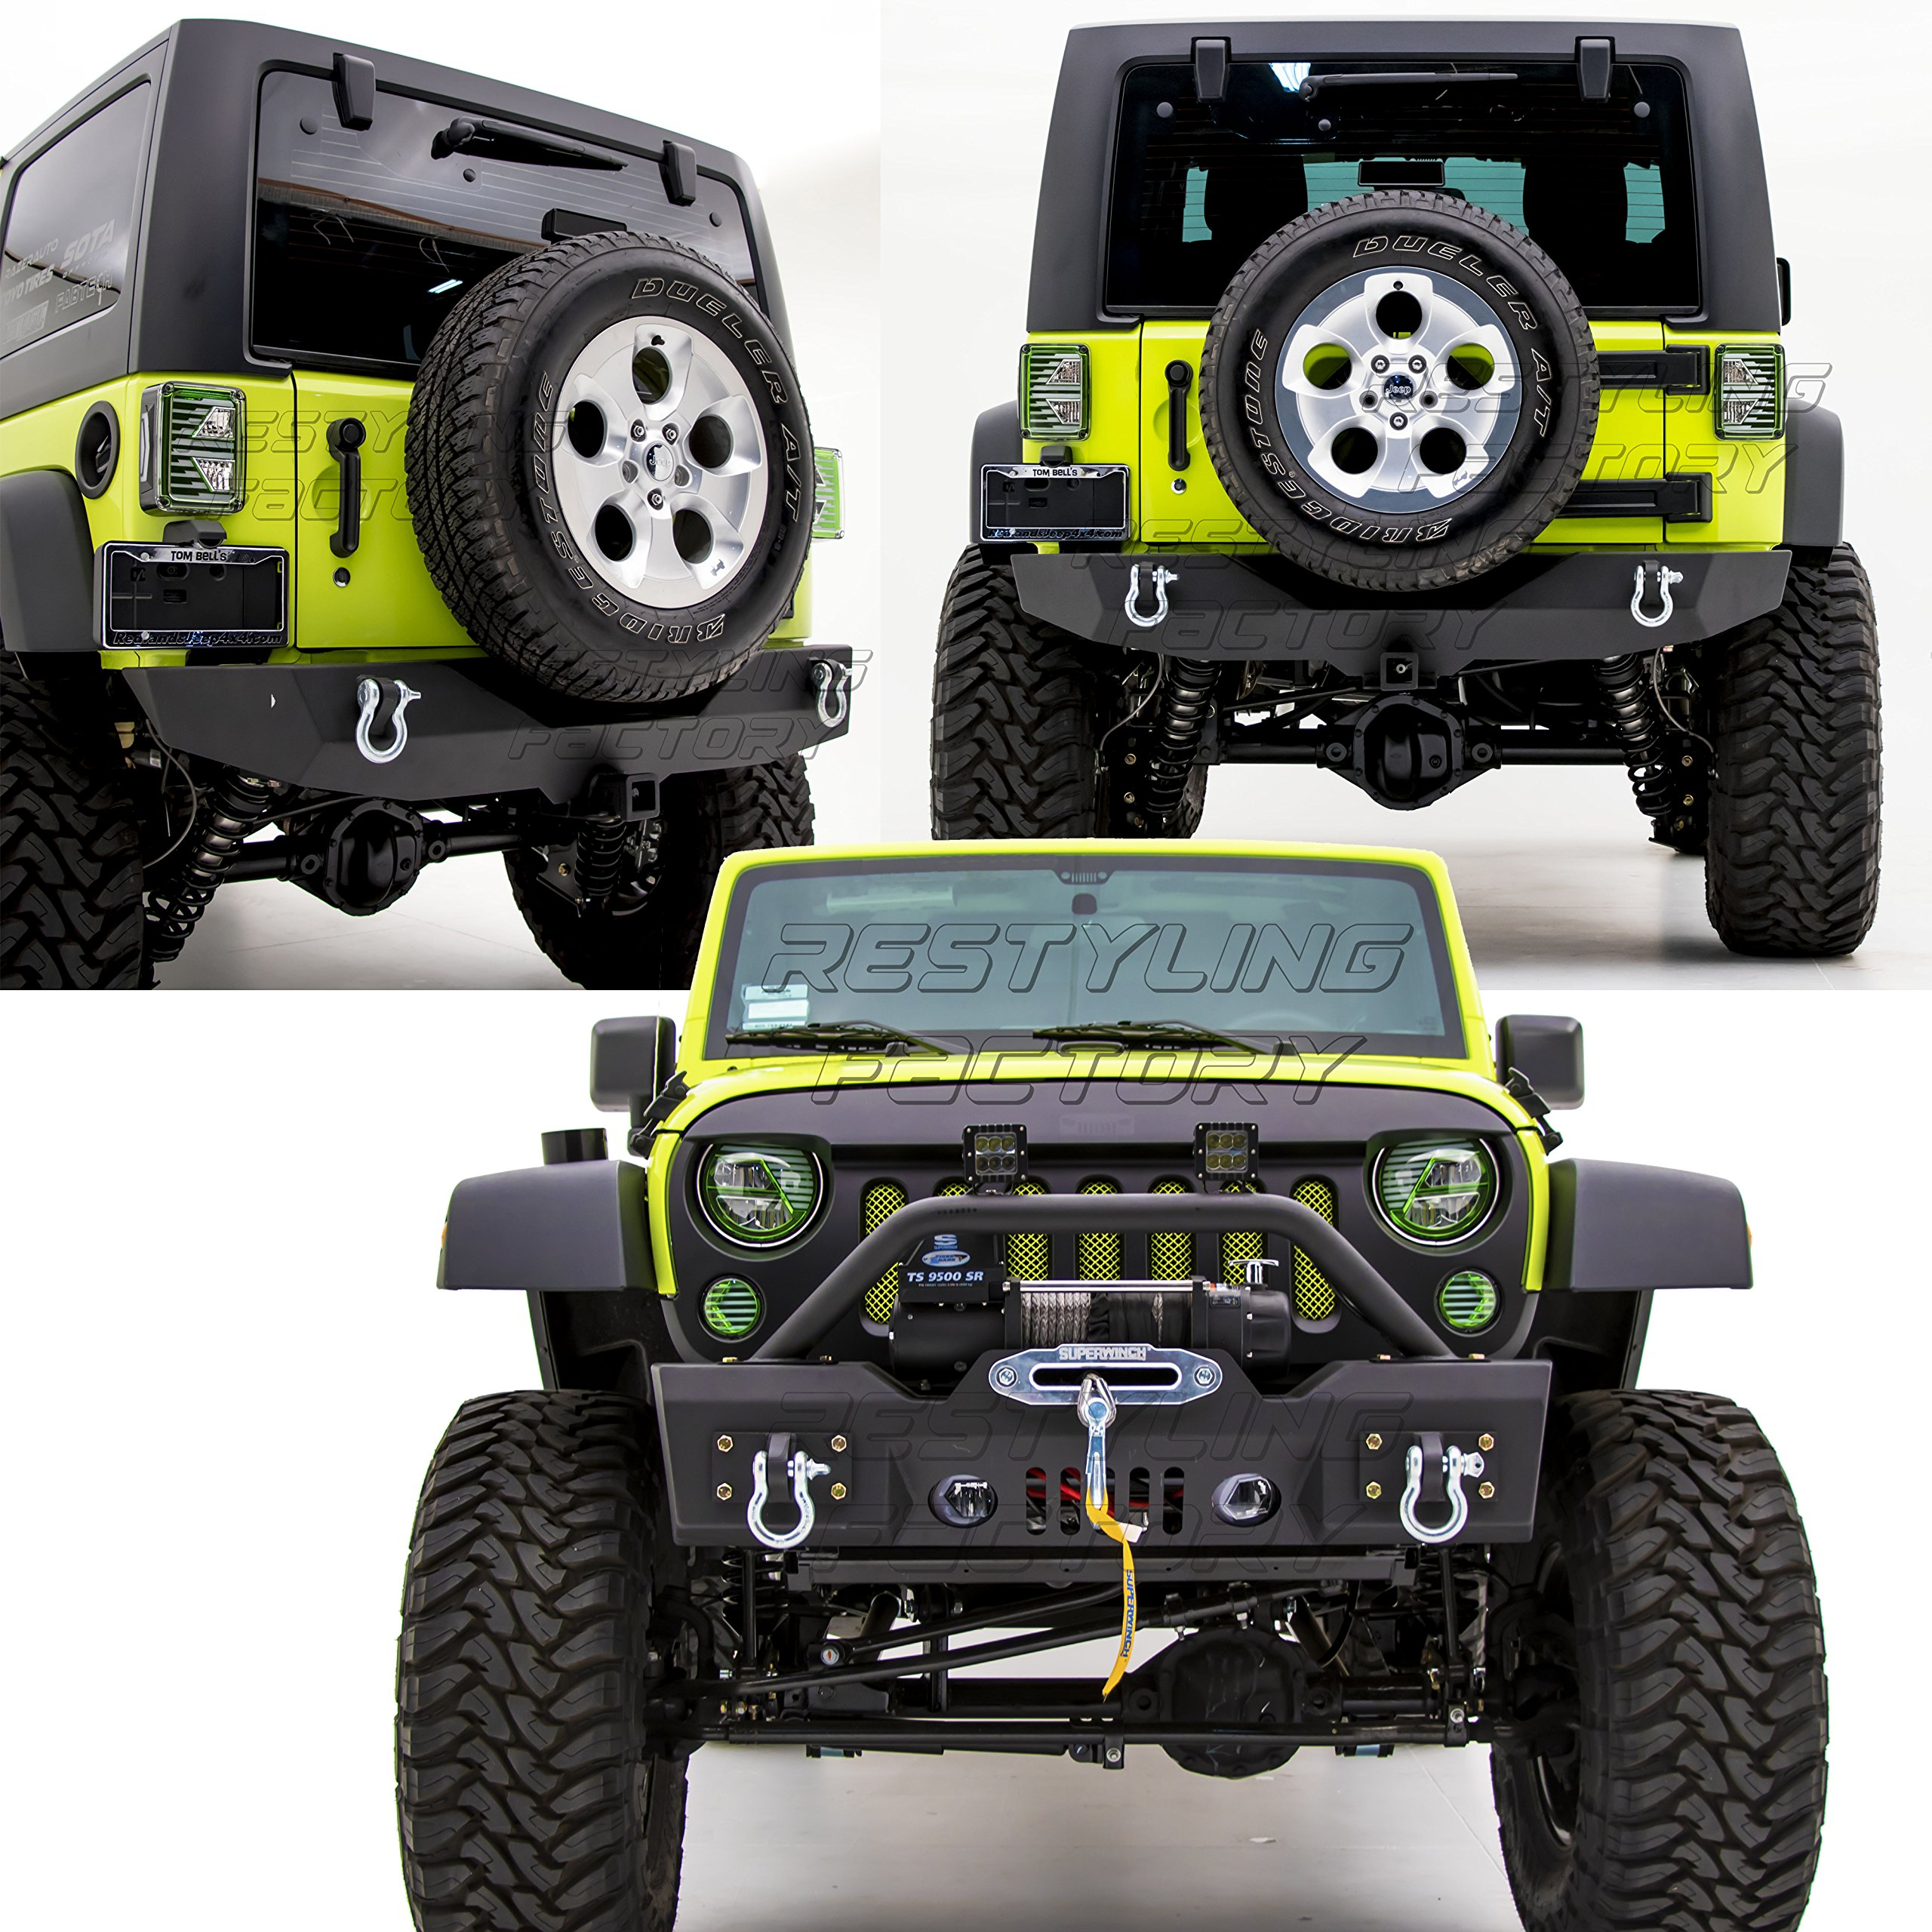 Cheap Jeep Stubby Bumper Mod Find Deals On Winch Rear Wrangler 2008 Get Quotations Restyling Factory 07 16 Rock Crawler Front With Oe Fog Lights